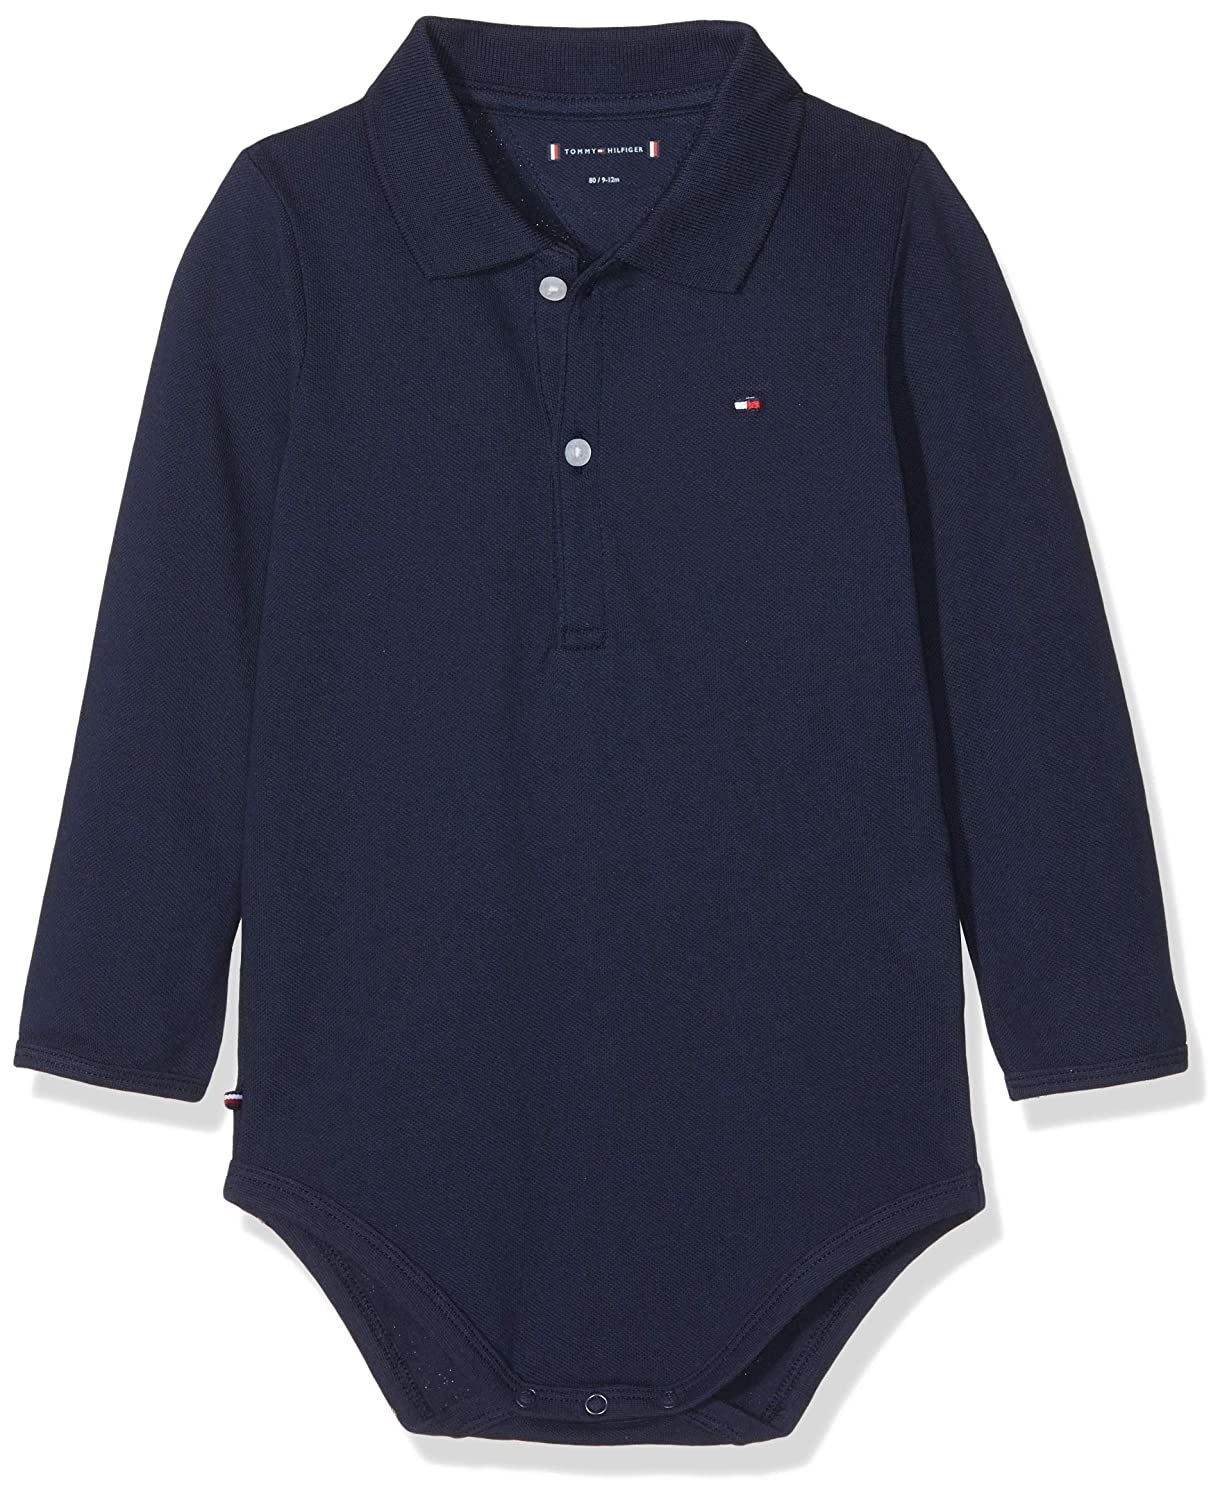 Tommy Hilfiger Polo Body Giftbox, Polaina para Bebés KN0KN00909